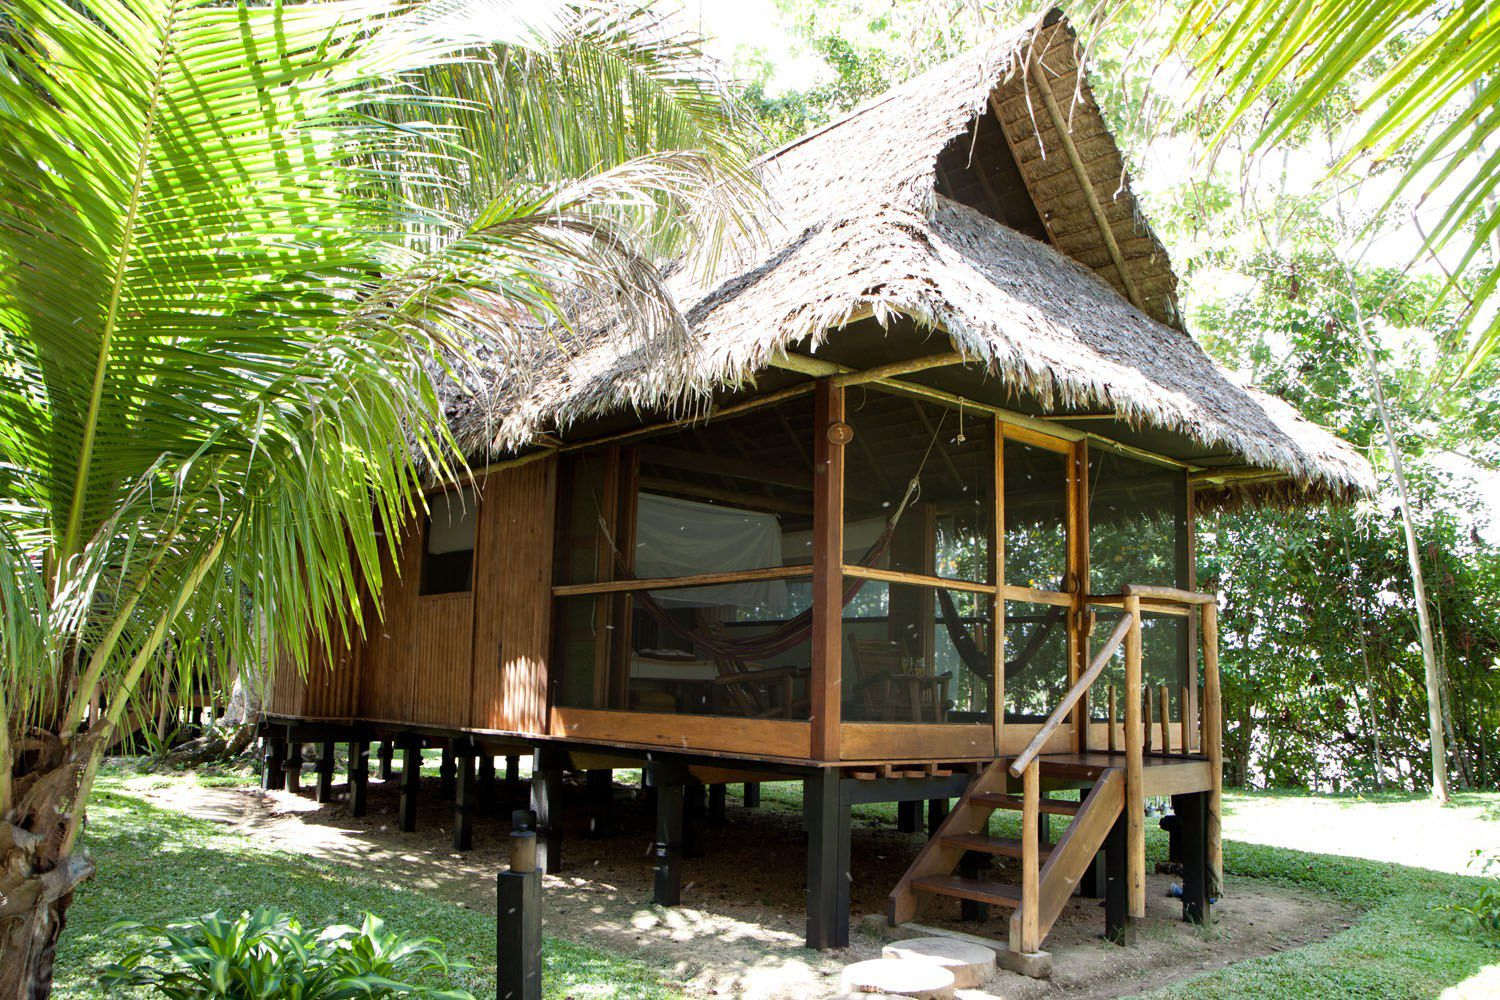 Our Cabana at the Inkaterra